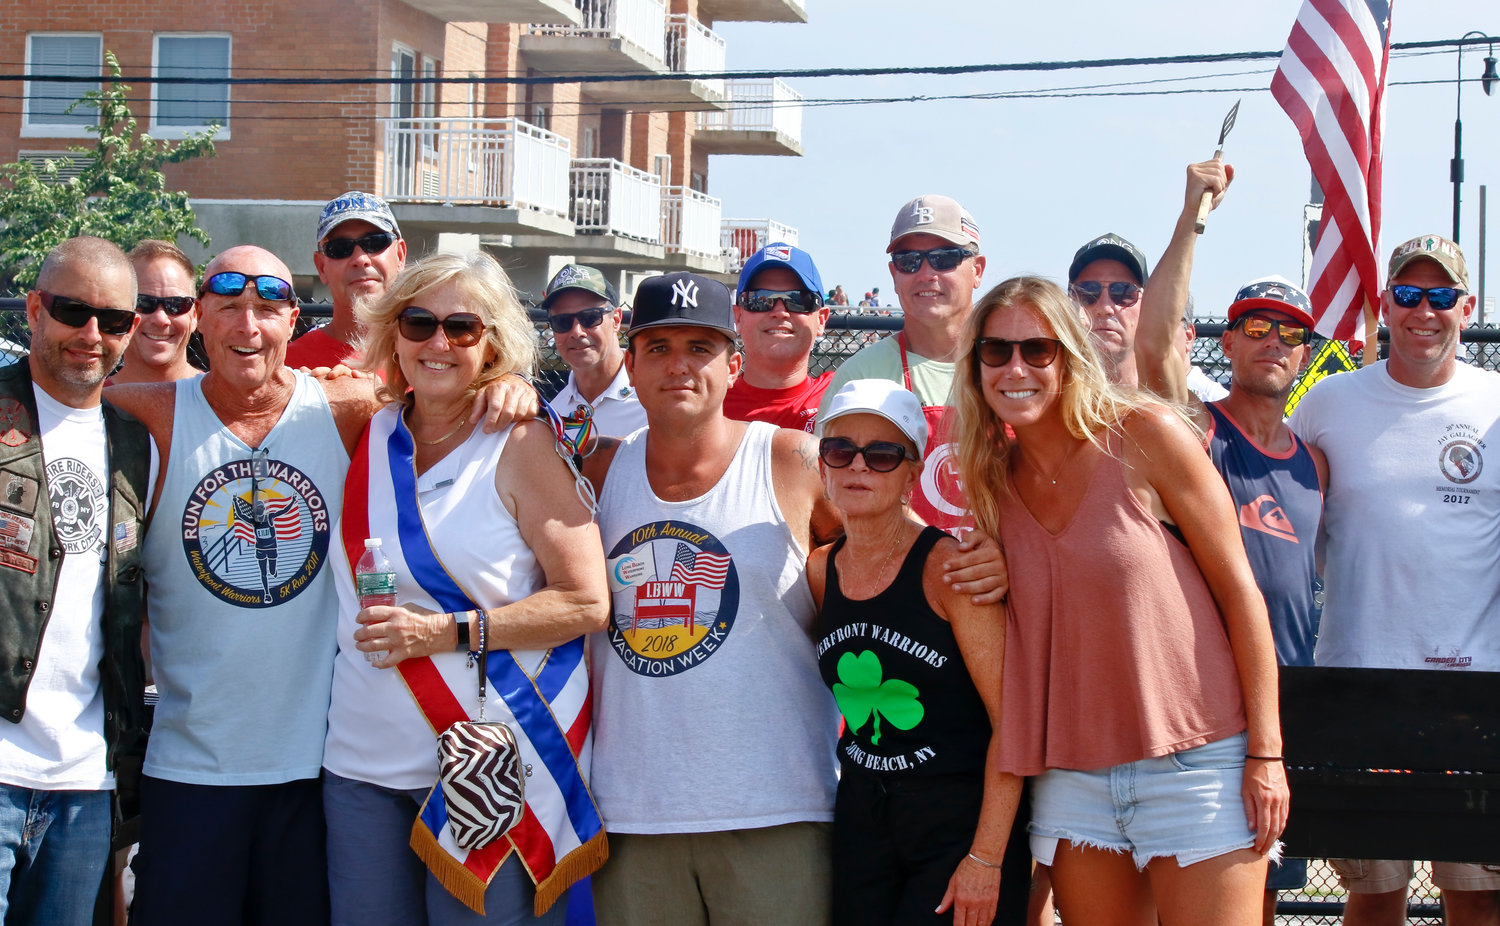 Veterans, FDNY, Waterfront Warriors, and locals gathered after the parade to enjoyed barbecue and live music